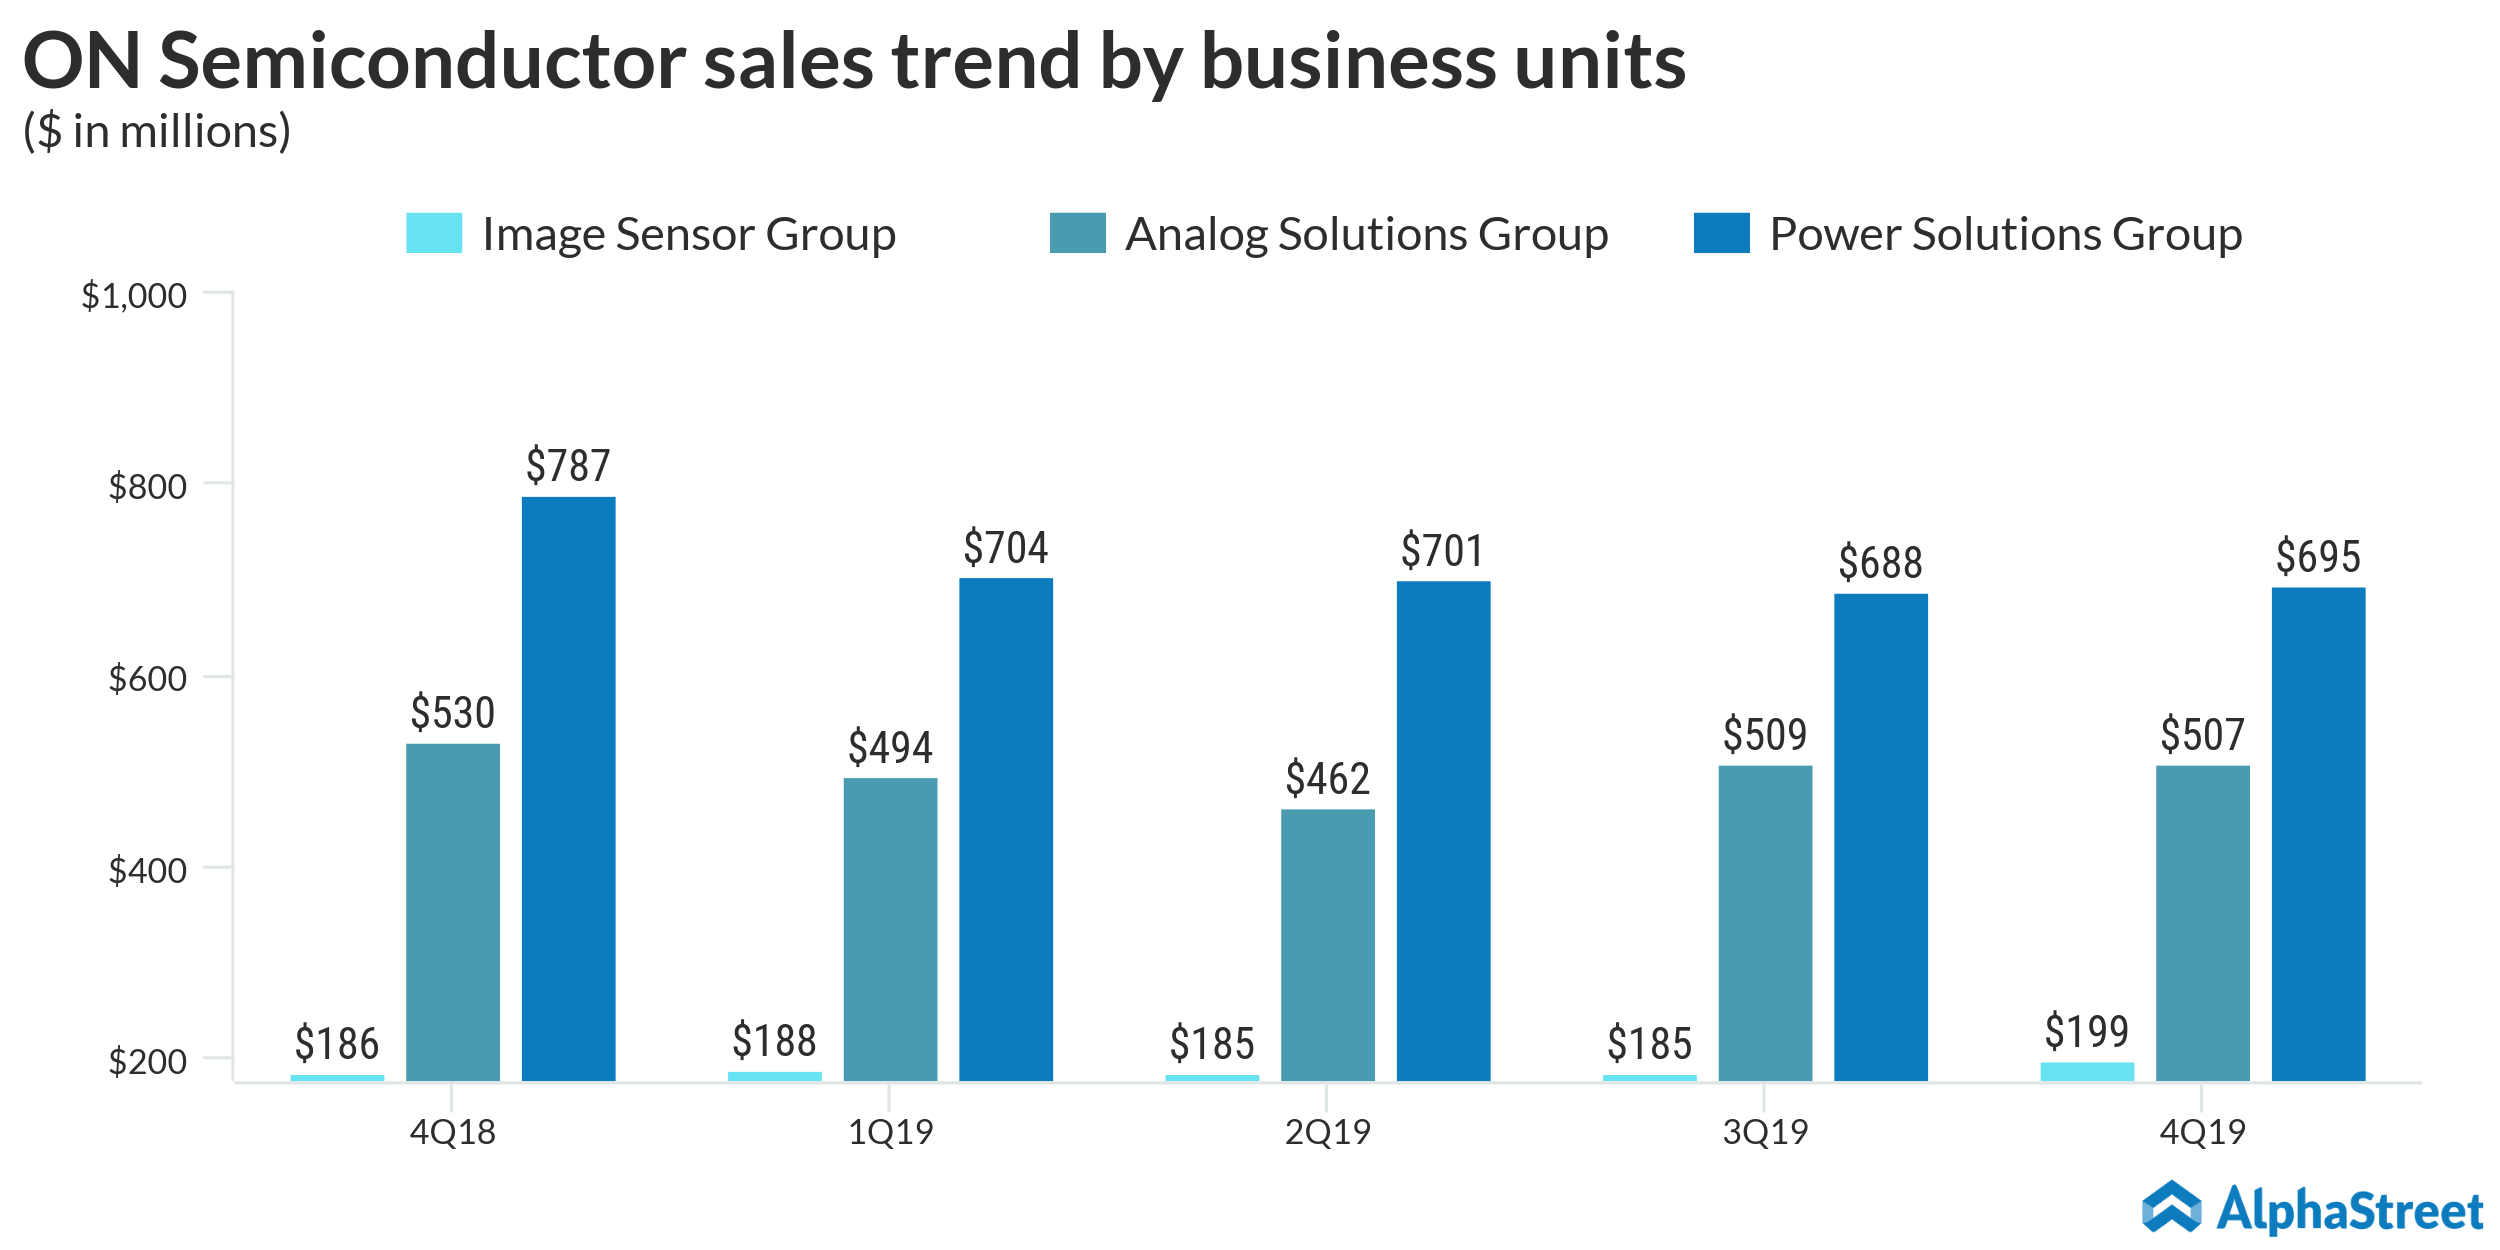 ON Semiconductor sales trend by business units